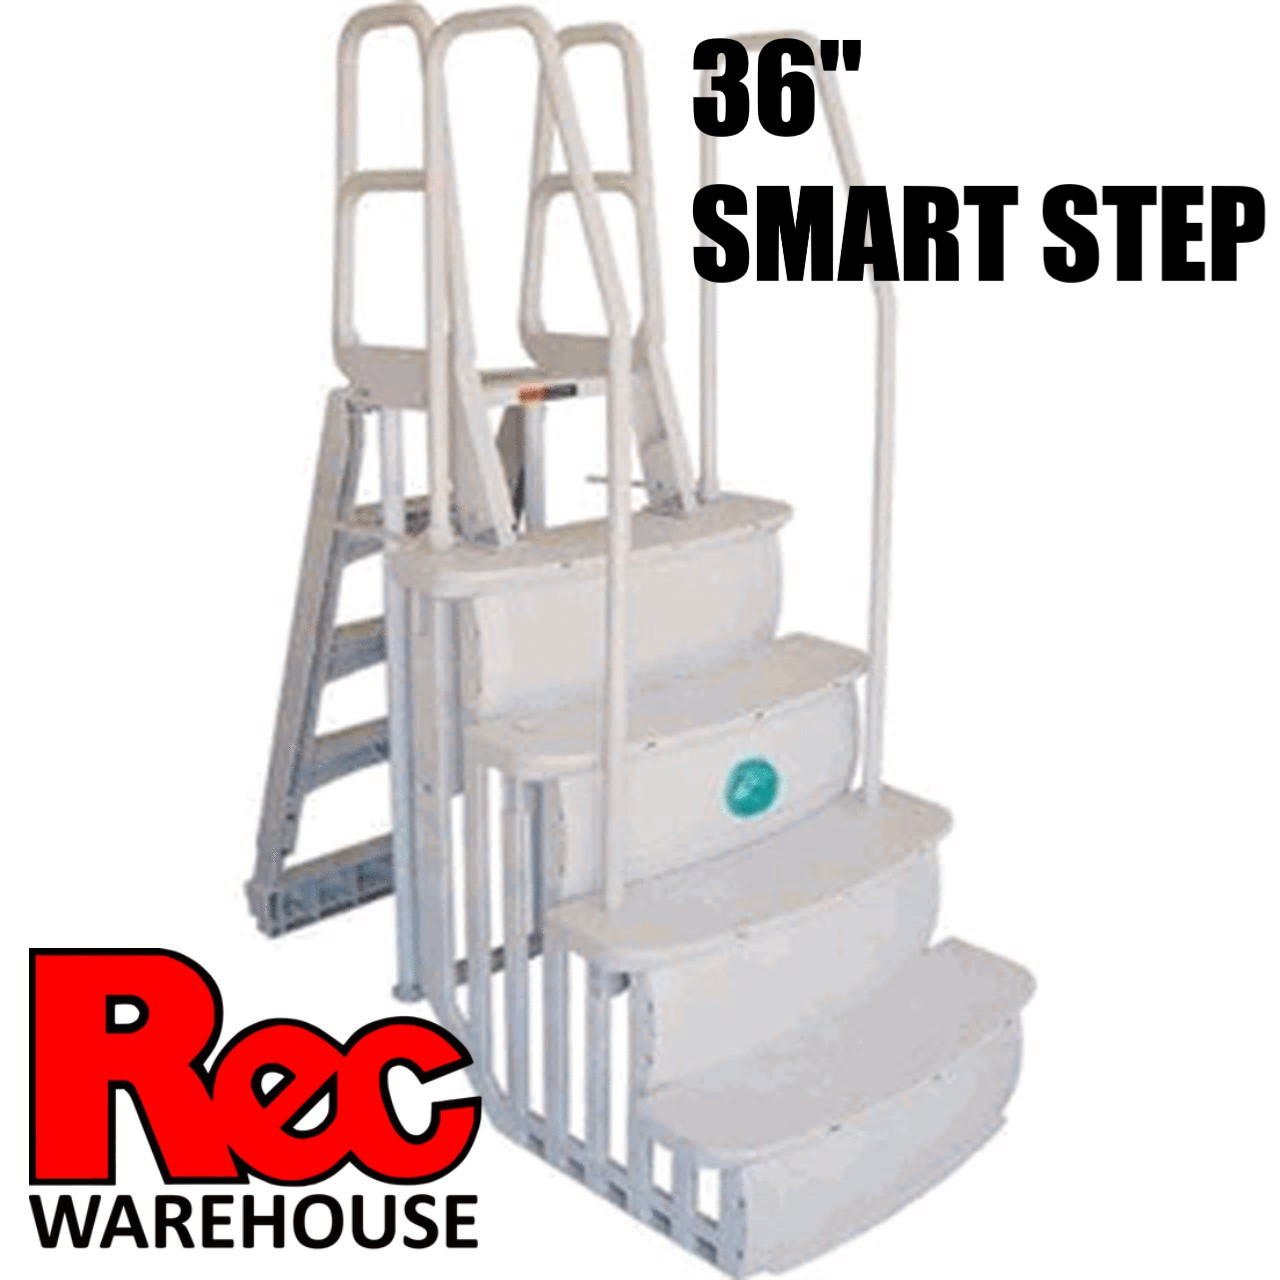 "Main access 36"" smart step with 2 handrails"